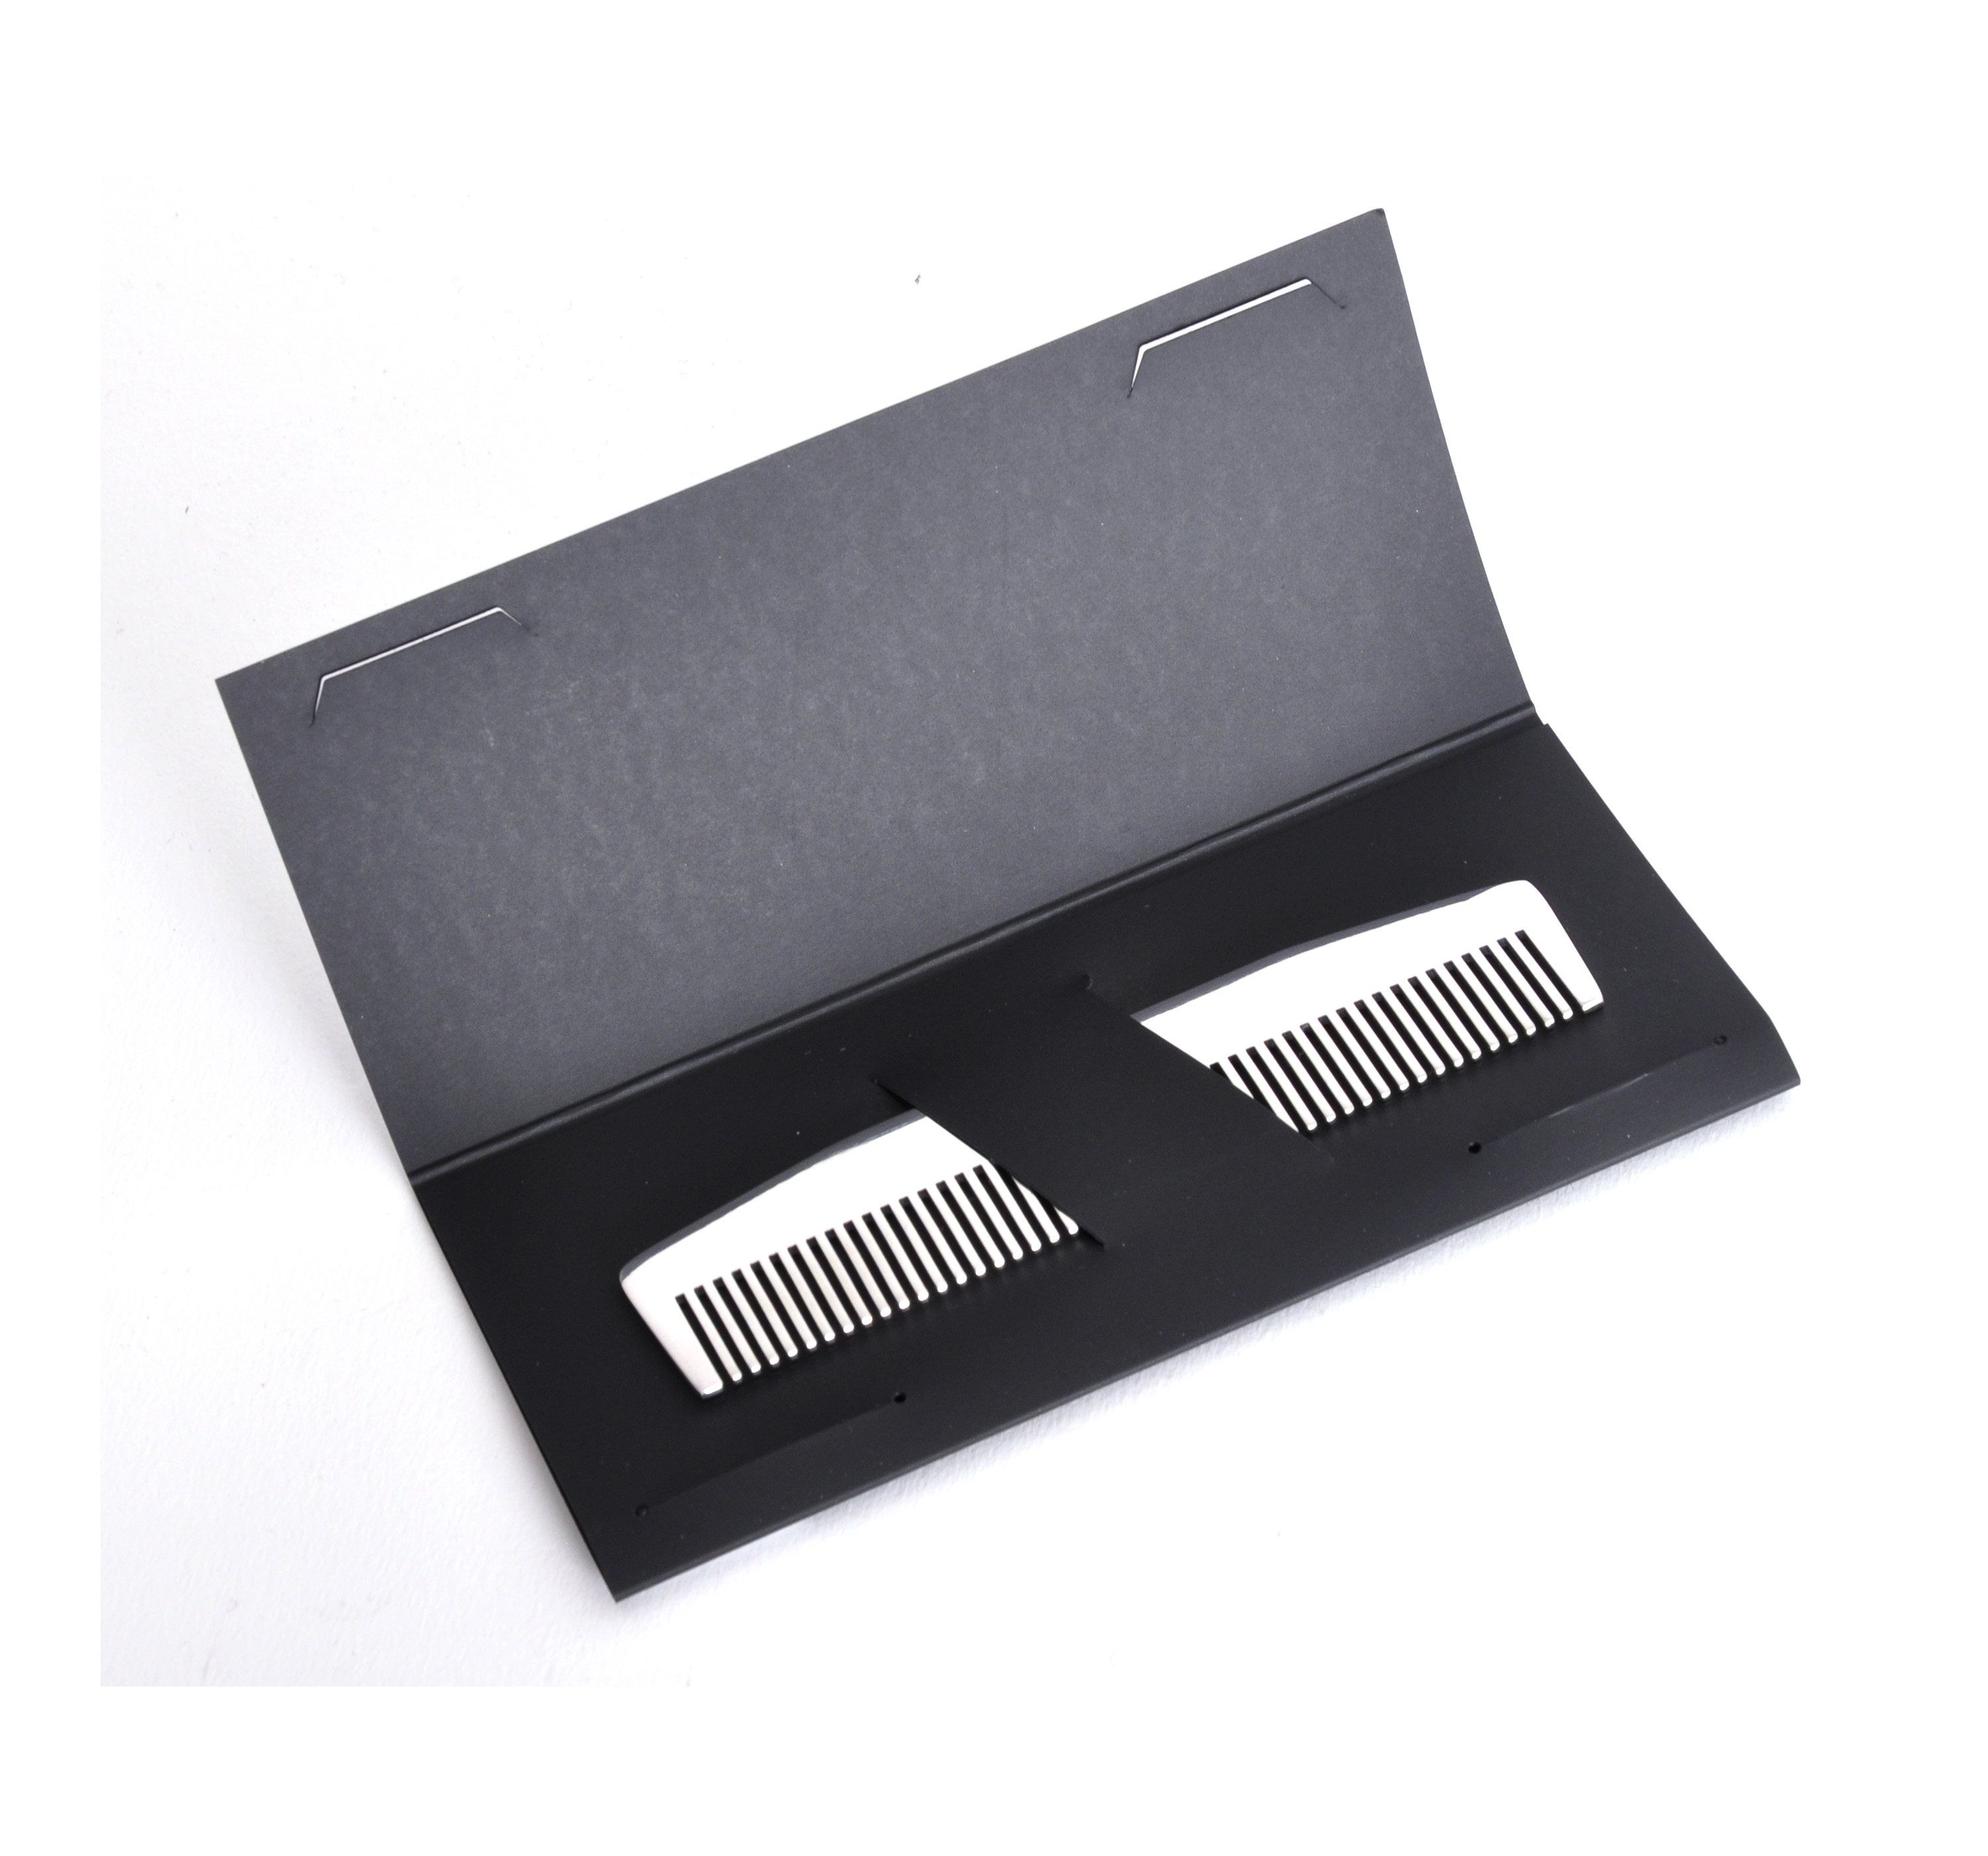 beard comb model no 3 mirror steel moustache and beard grooming tool ebay. Black Bedroom Furniture Sets. Home Design Ideas